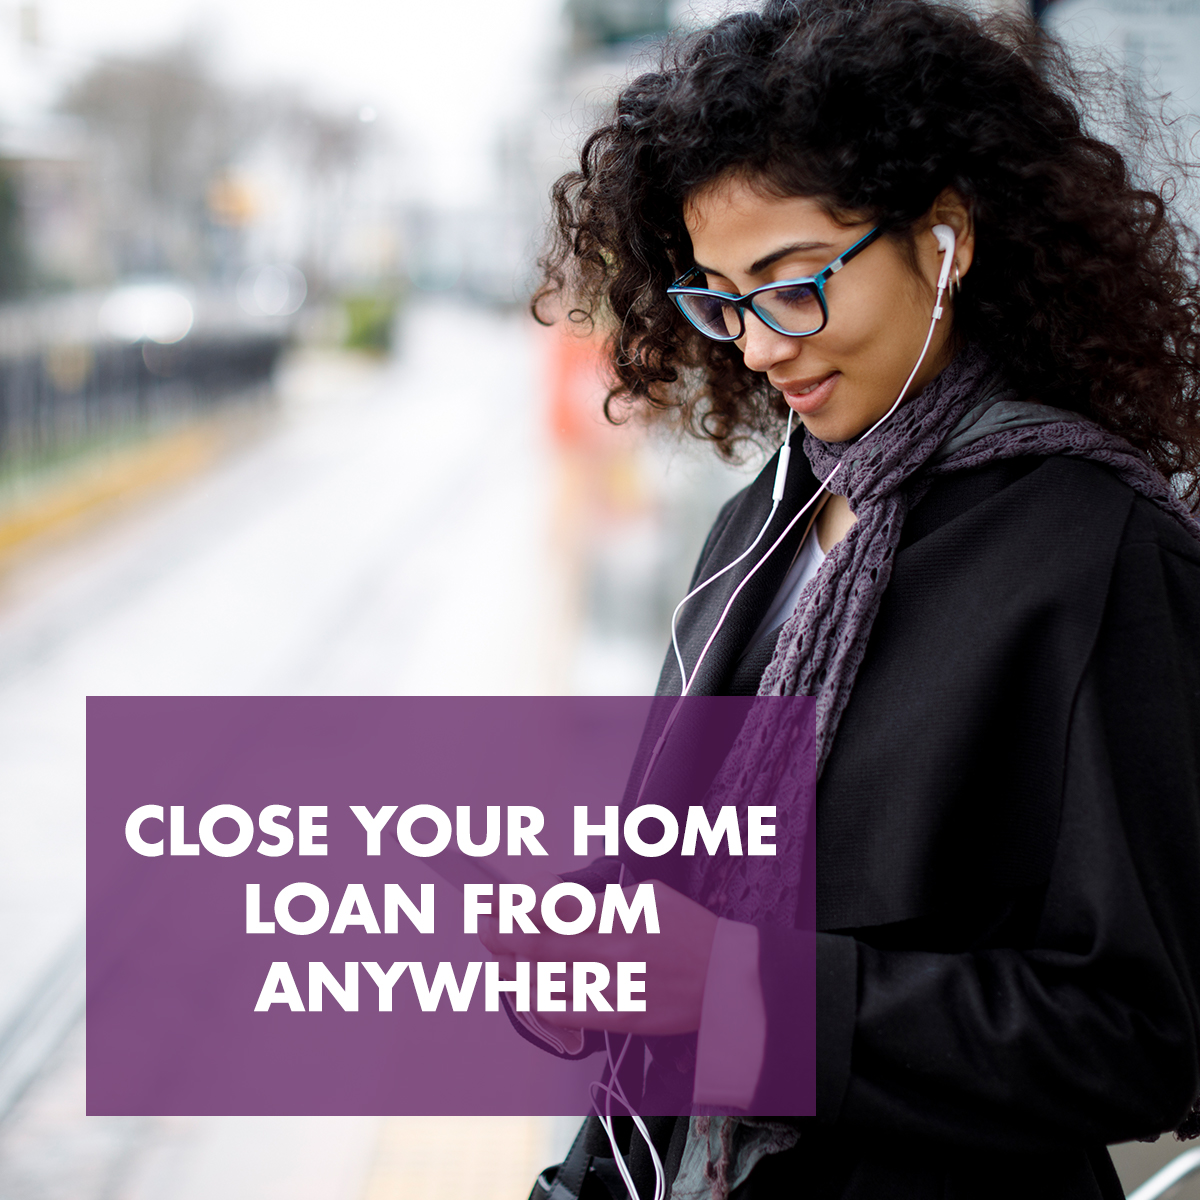 With Virtual E-Closing, you can sign closing documents in a plane, on a train, or from the comfort of your own home! @NorCal Mortgage   #esign #docless #mortgagelender #mortgagebrokers #centralvalleyhomes #norcalmortgage #refi #refinance #homeloans #loanmarket #homebuyerpic.twitter.com/IhixrT1DOb